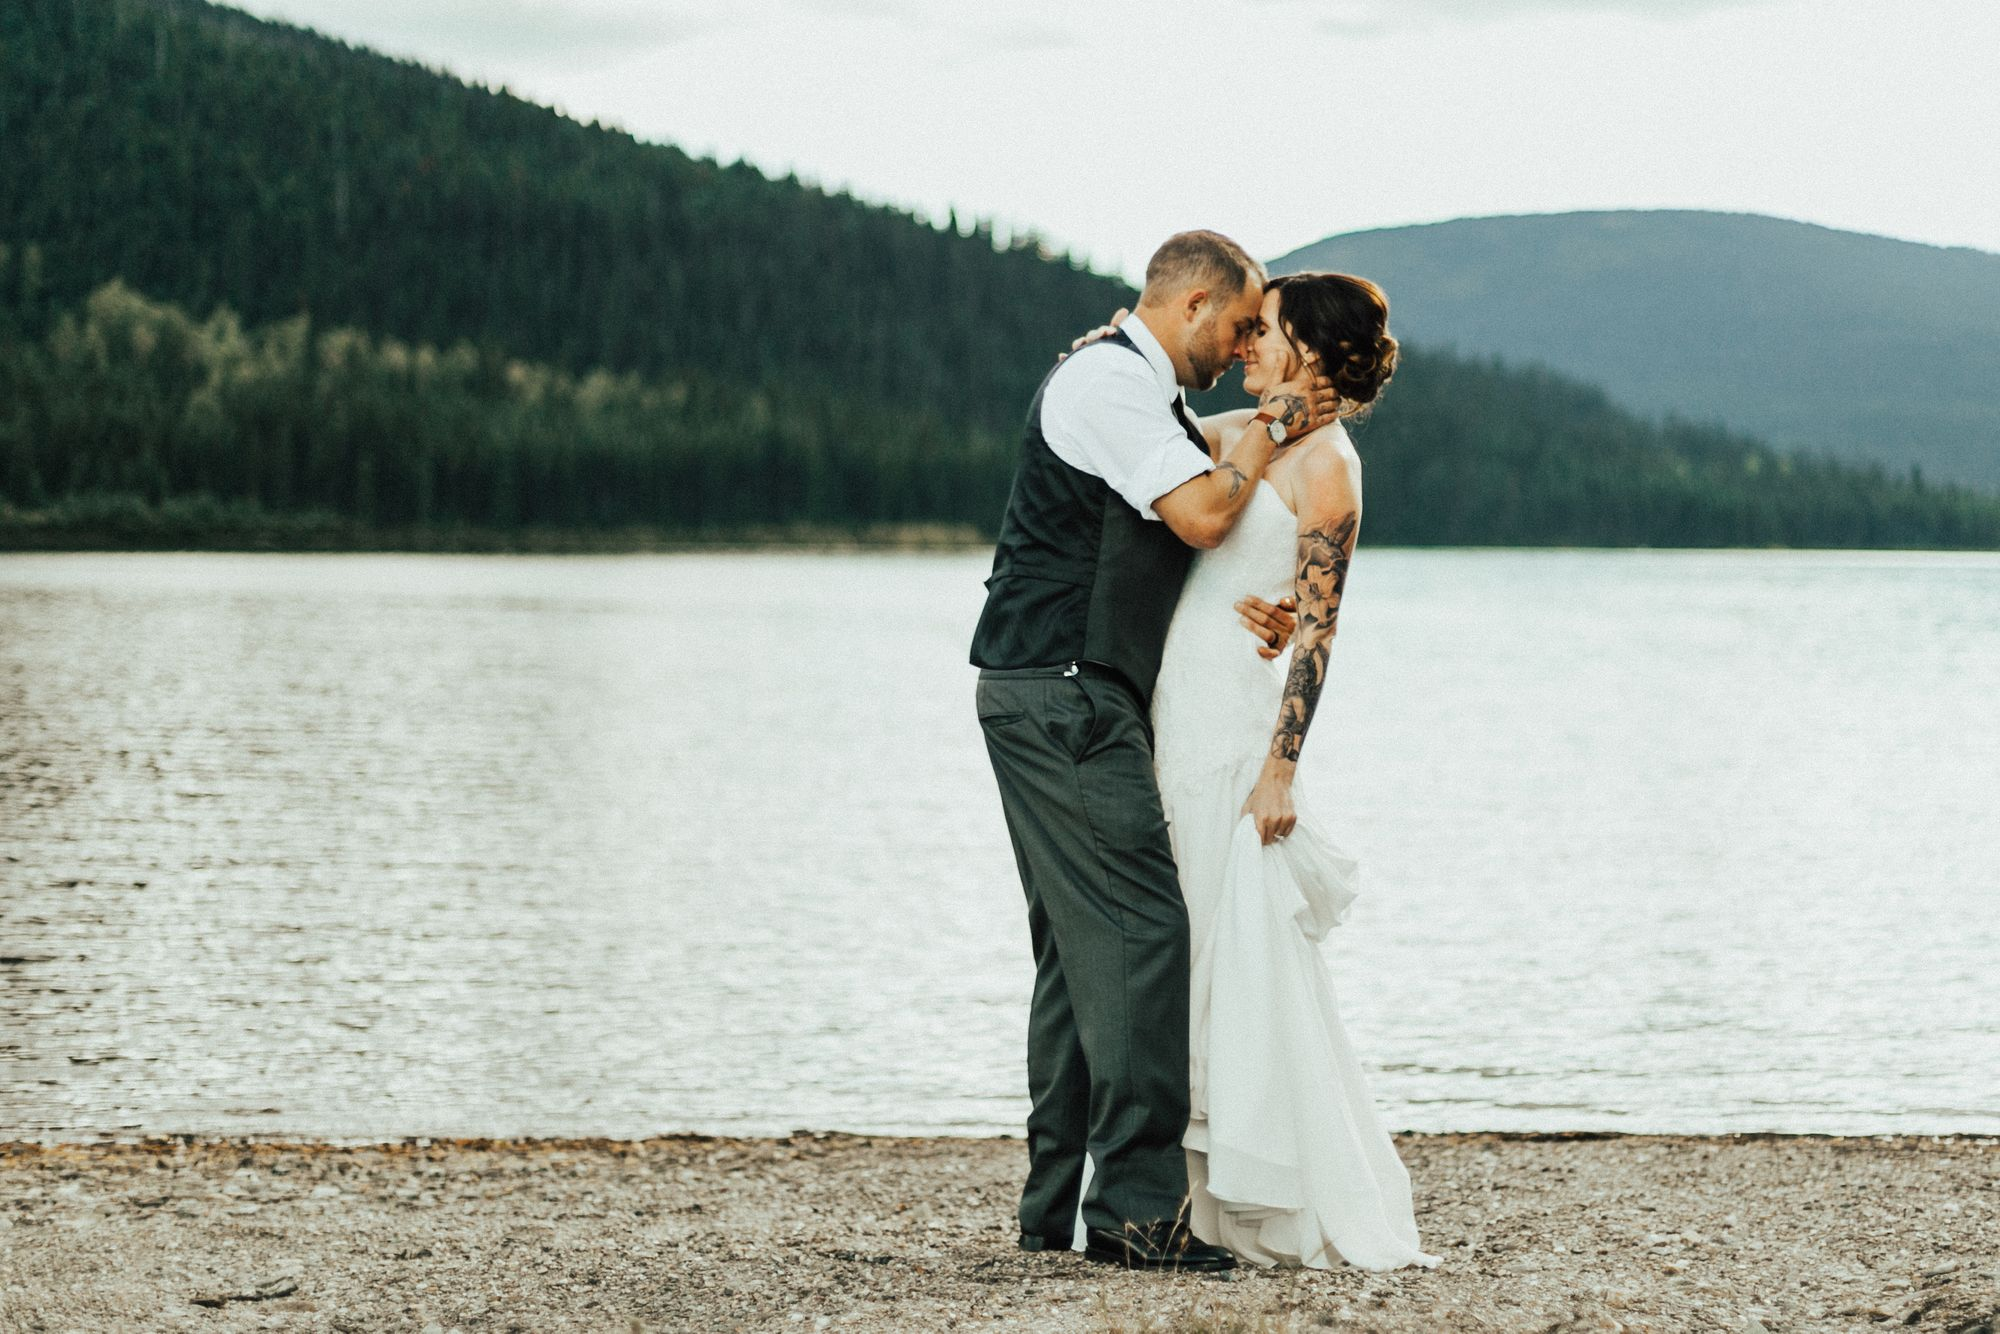 Katy + Dave | Barkerville, BC